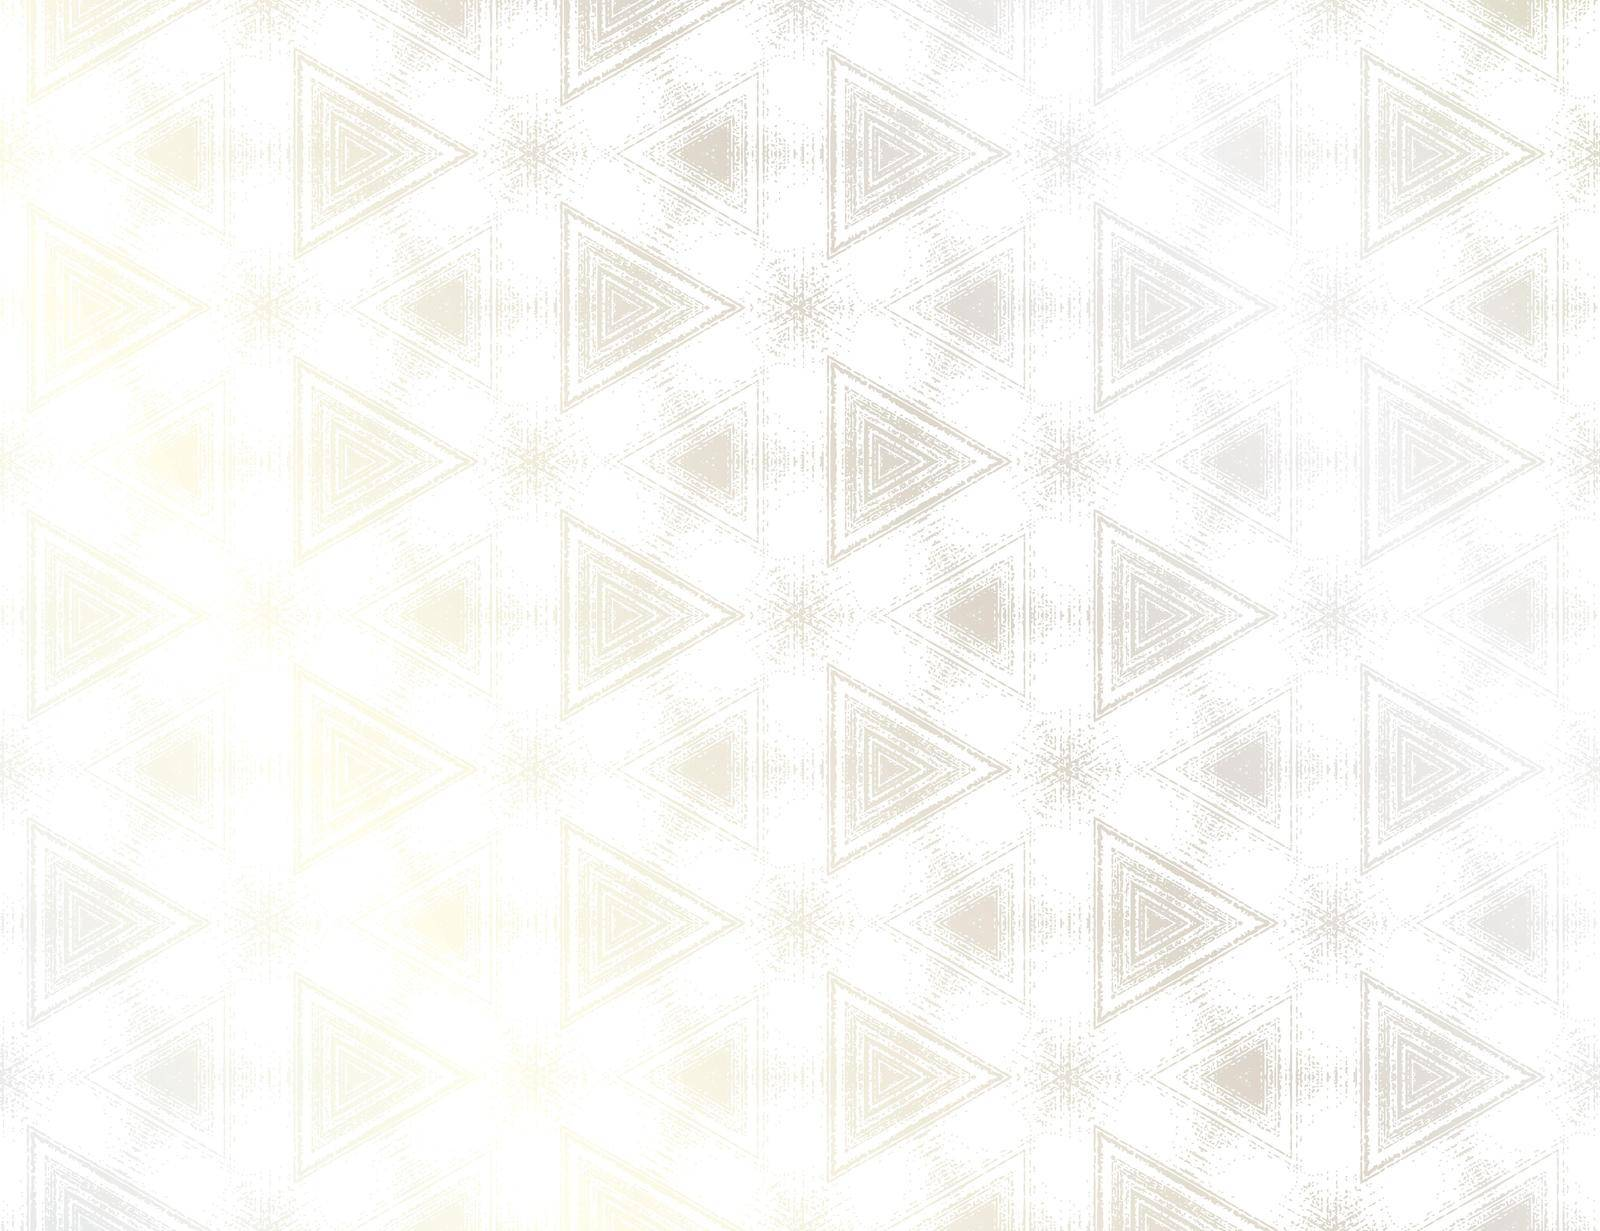 Abstract white and silver textured pattern with kaleidoscope effect by LanaLeta